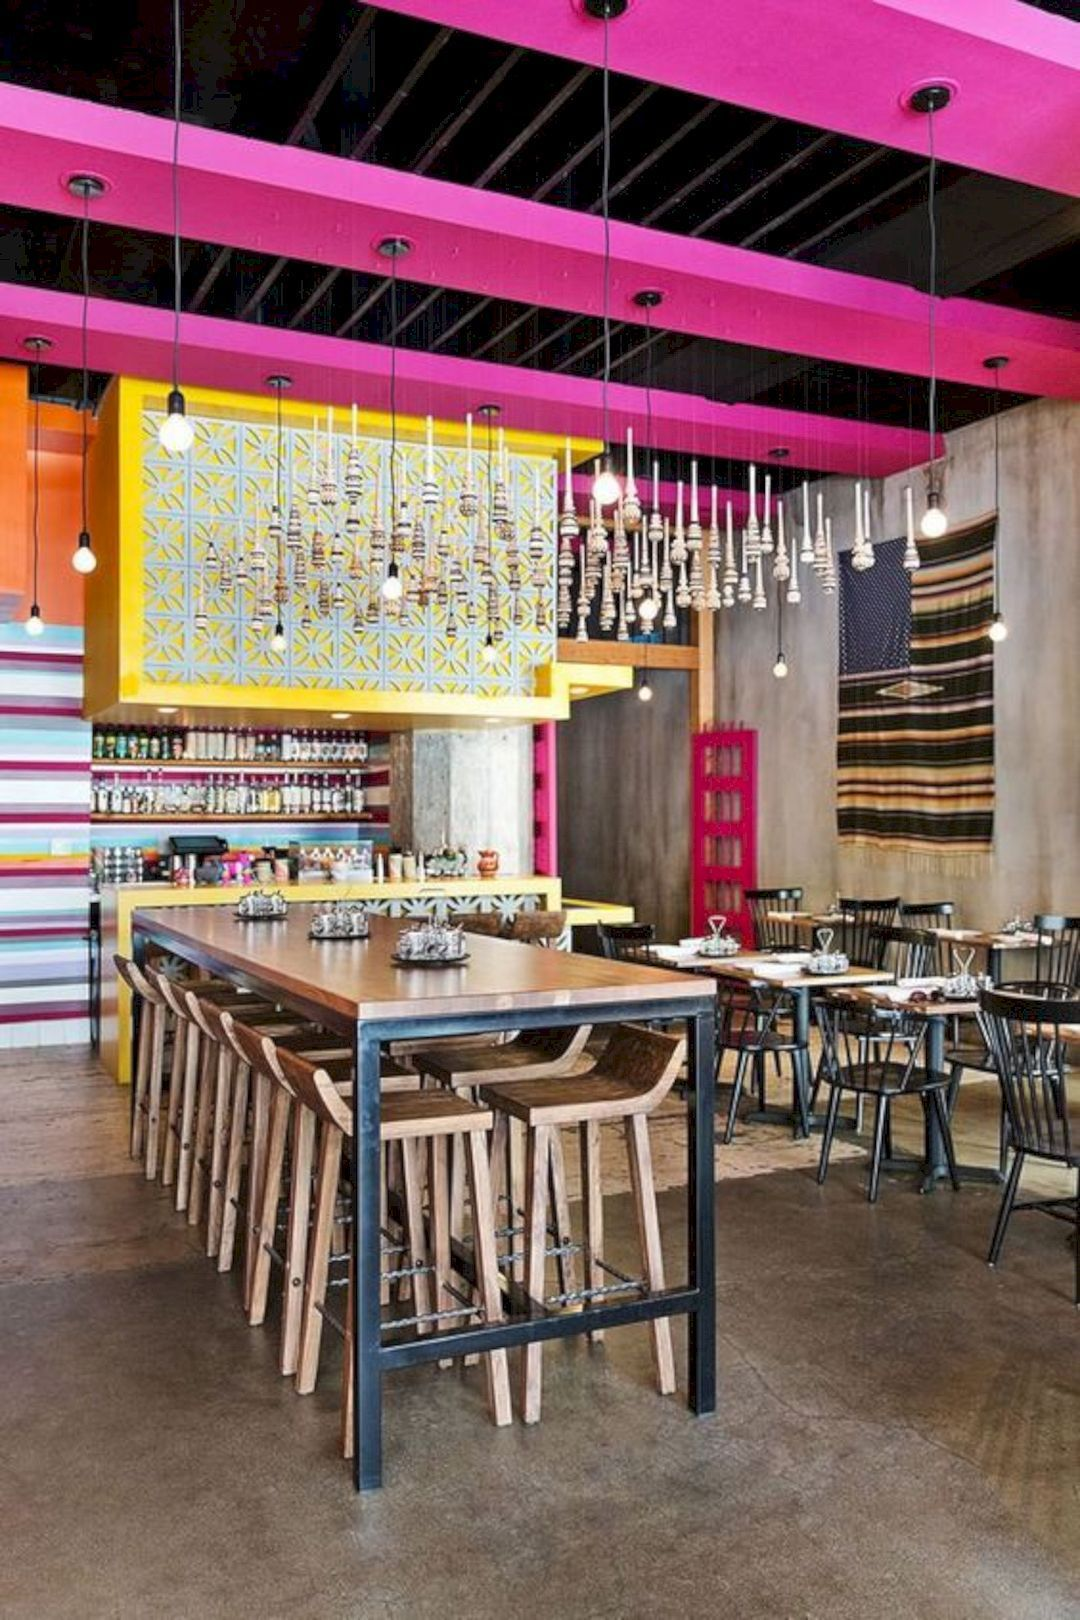 15 Great Interior Design Ideas For Small Restaurant Https Www Futuristarchitecture